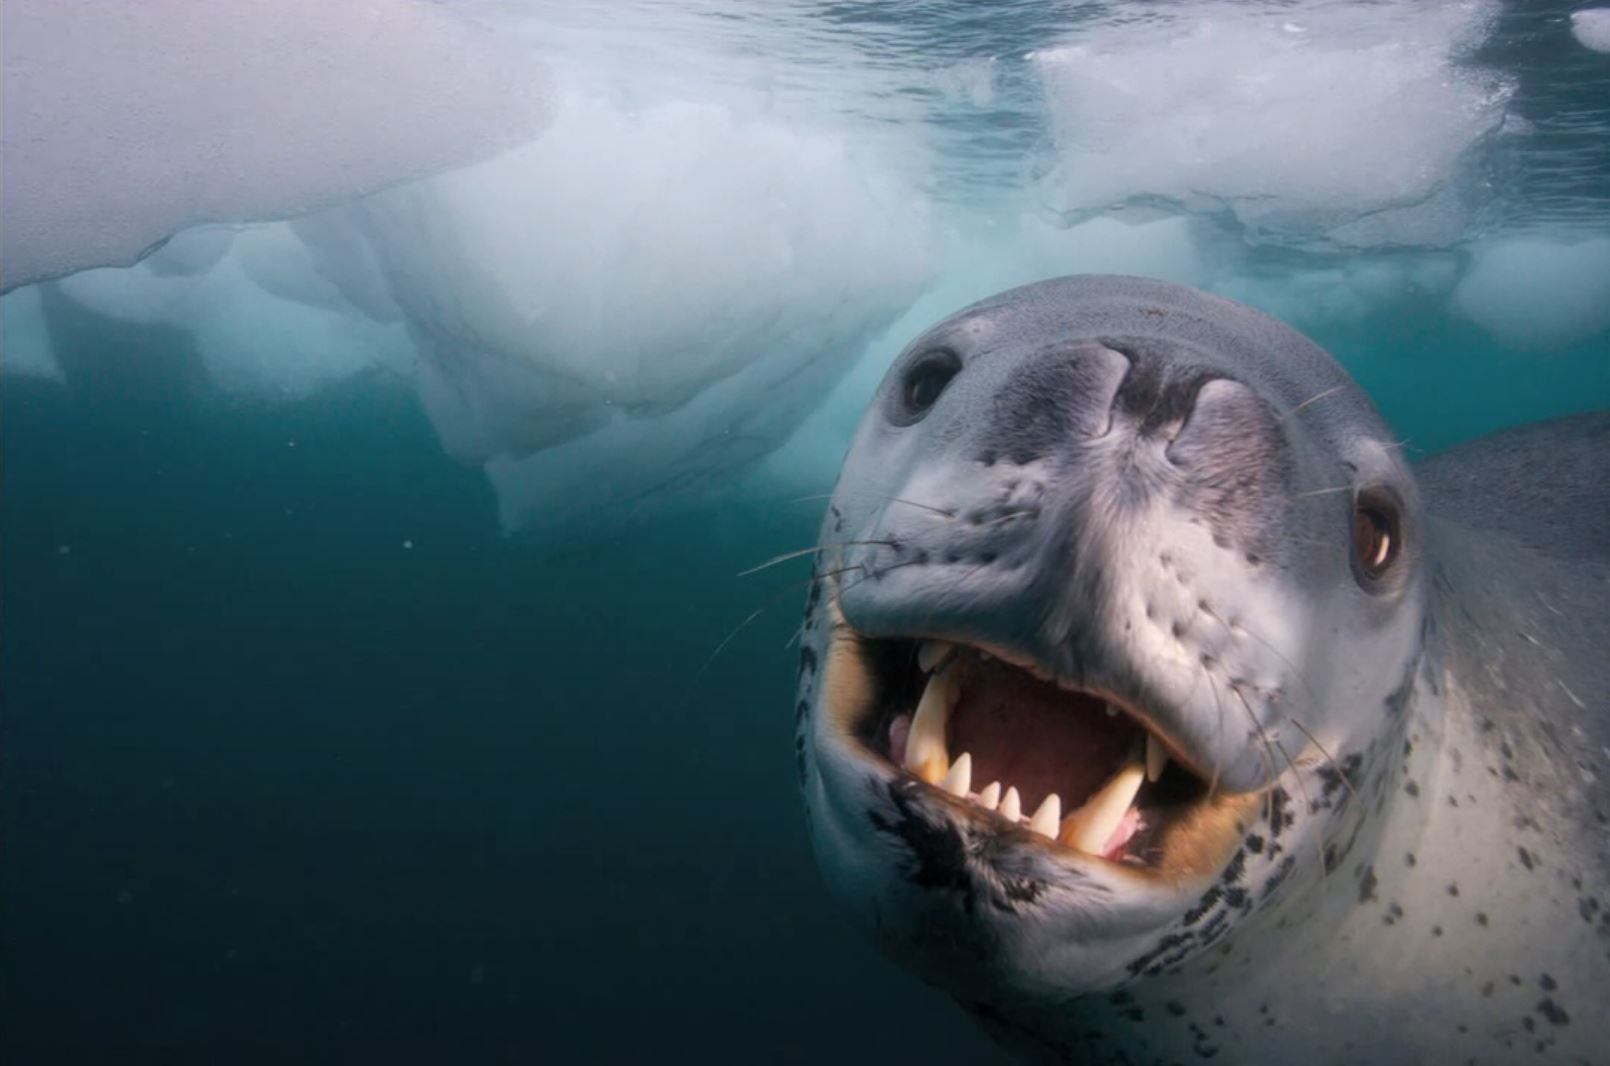 A photographers incredible encounter with a leopard seal ...